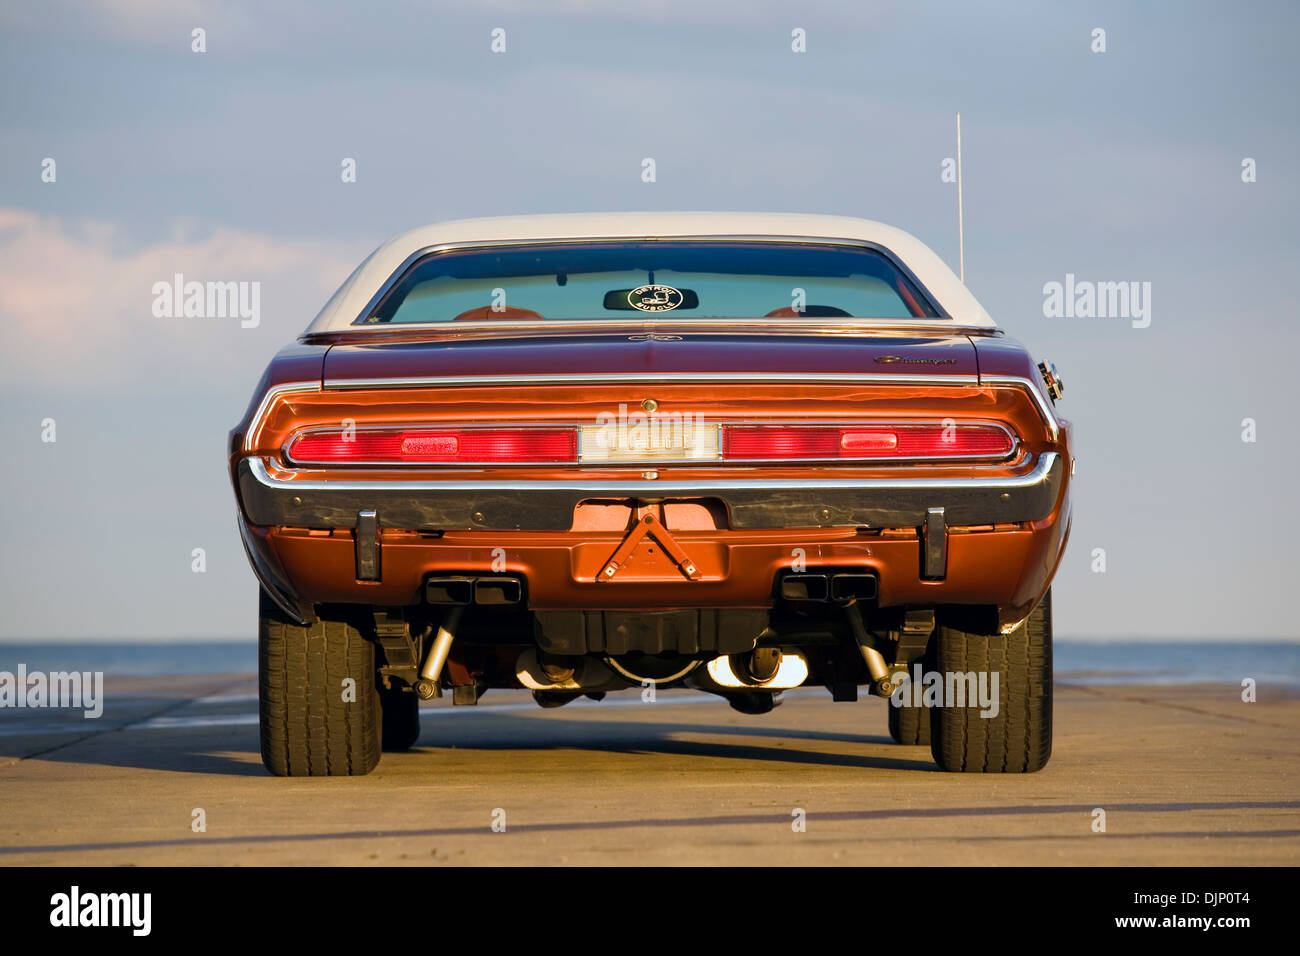 1970 Dodge Challenger Muscle Car Rear Stock Photo 63178532 Alamy